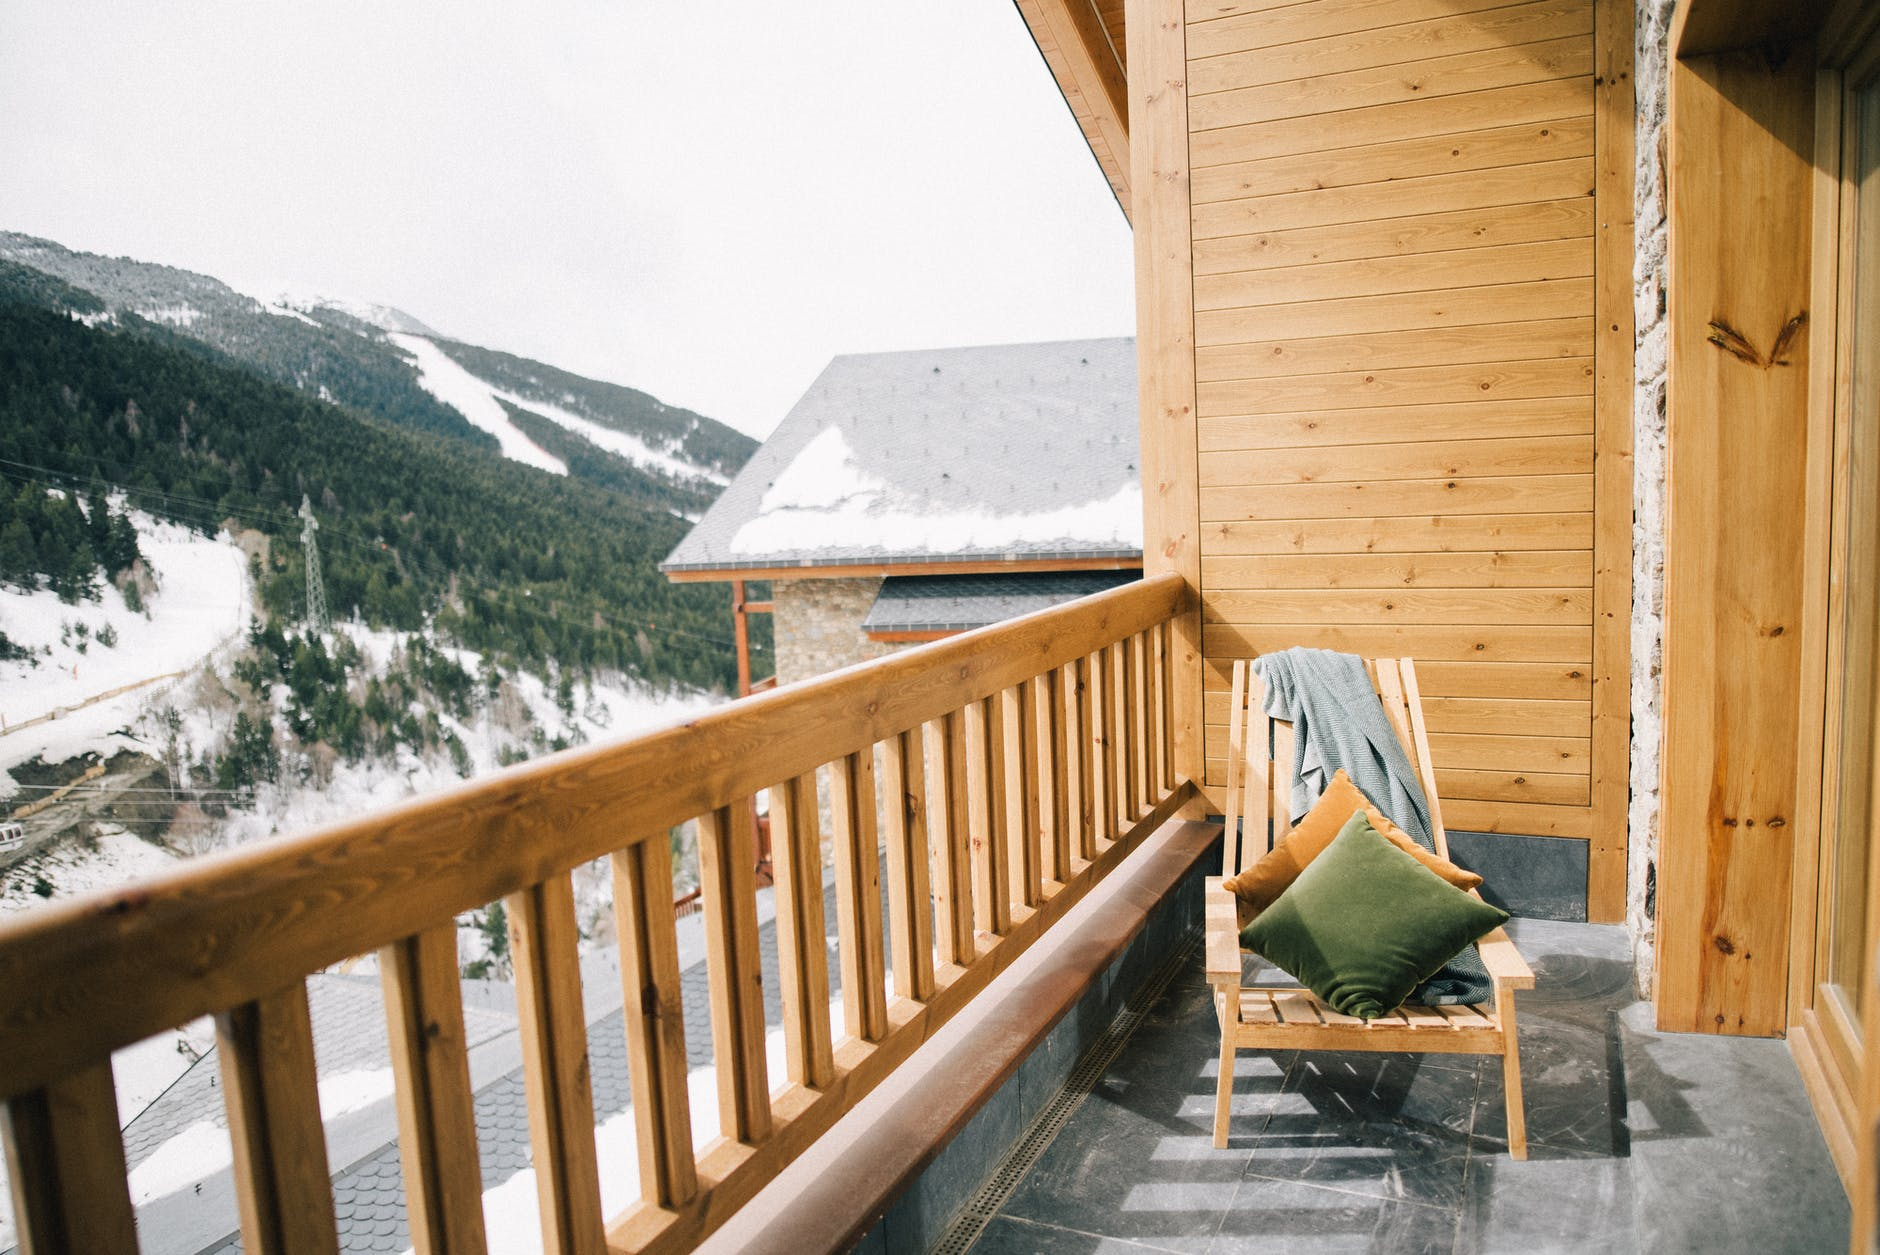 brown wooden chair on a veranda with view of a snowy mountain